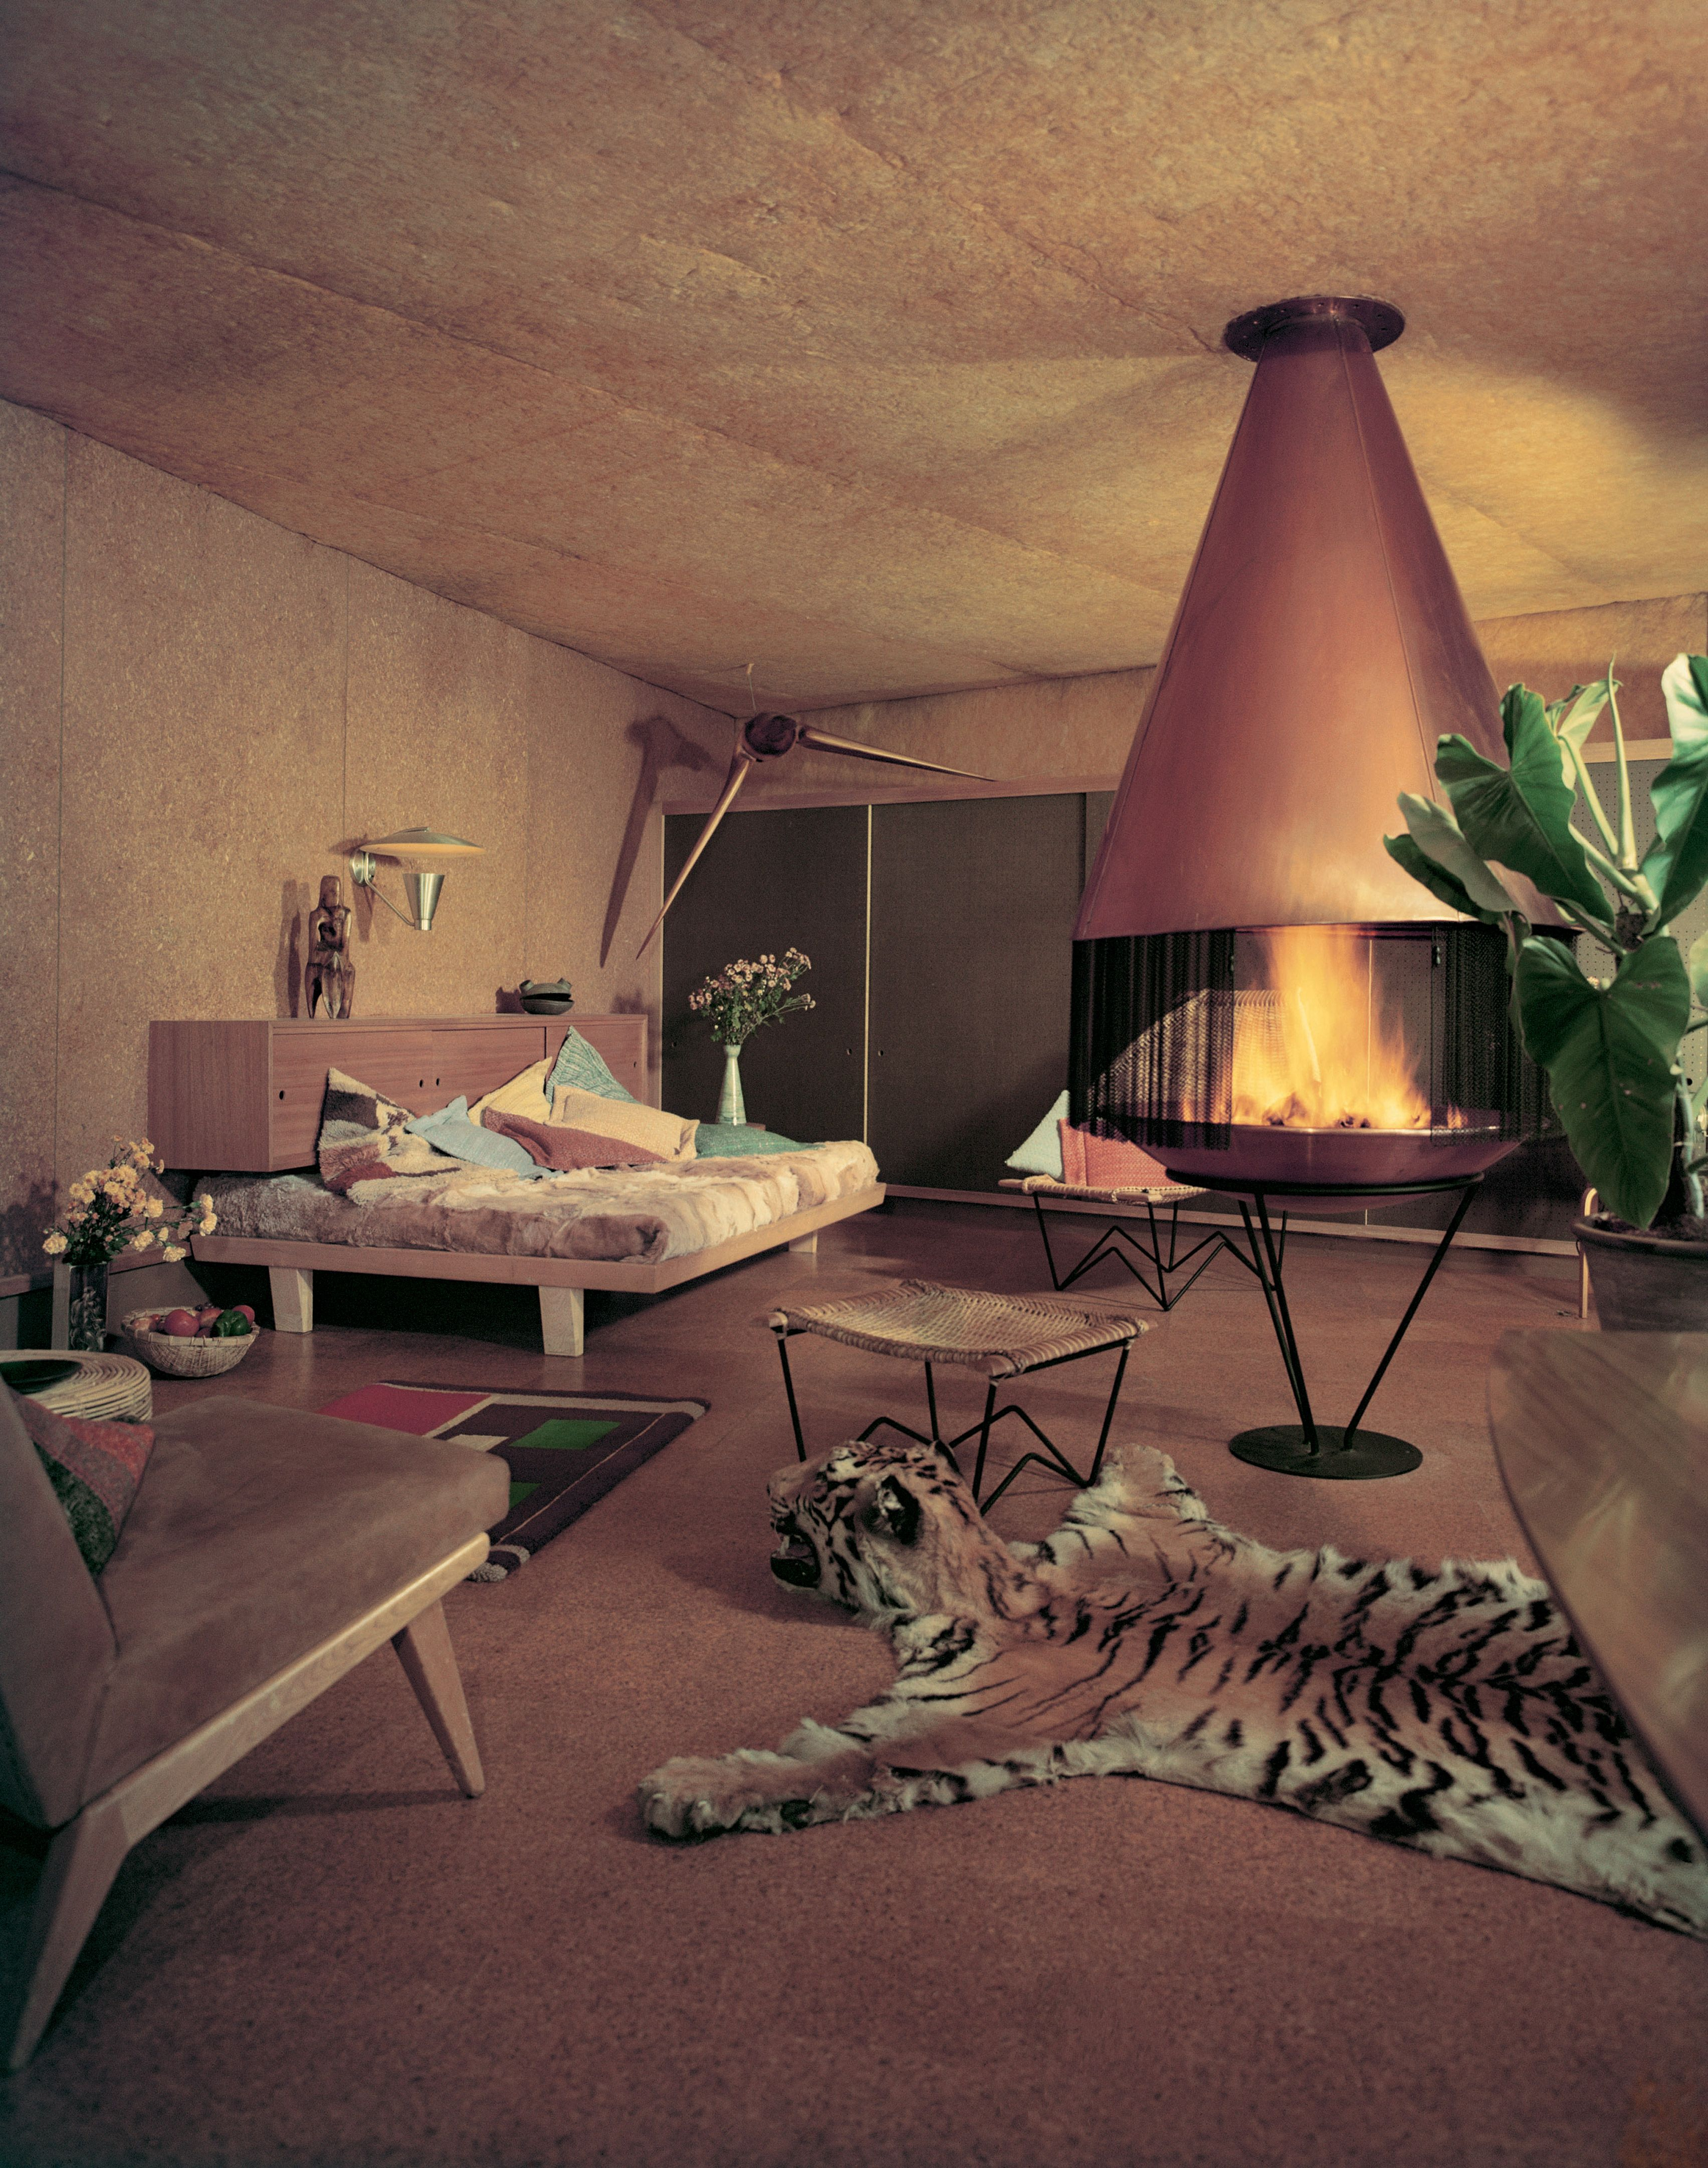 Residence by William Alexander, Los Angeles, California, photographed in 1952